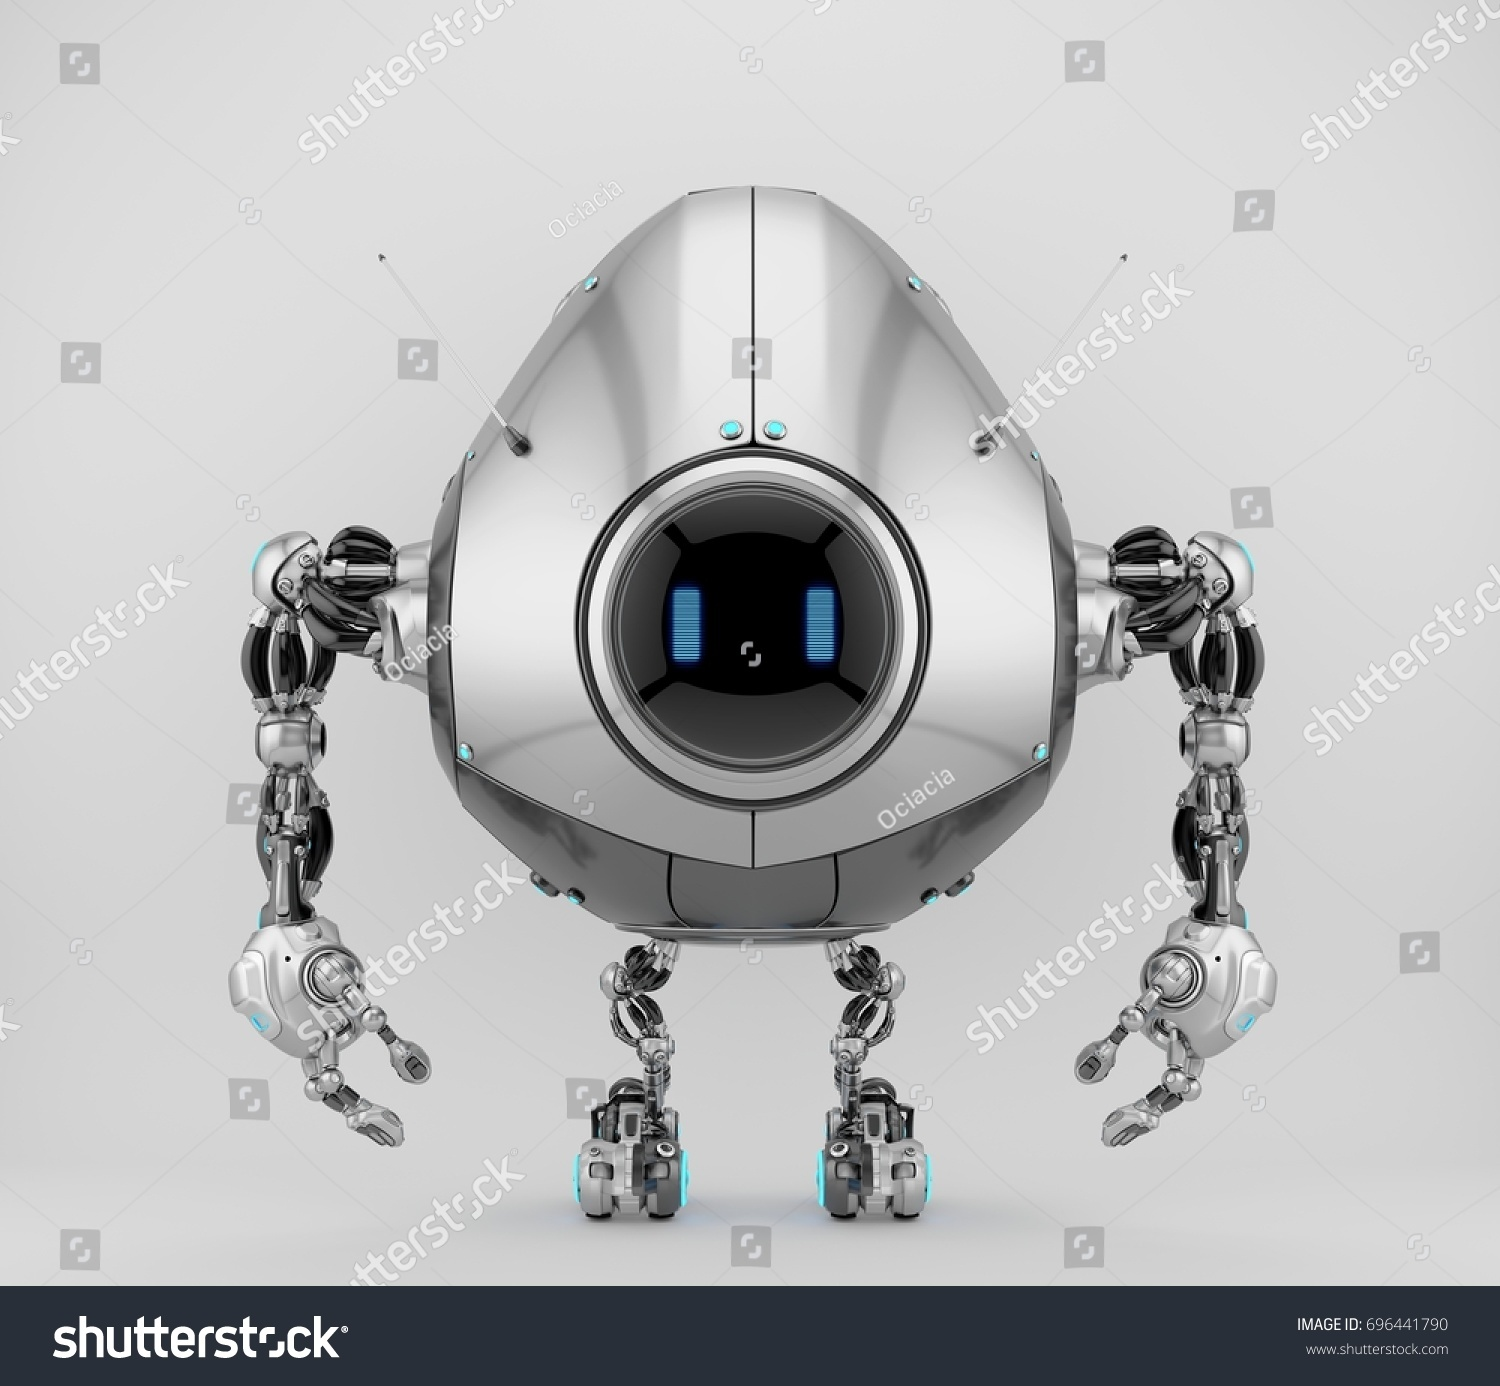 Futuristic Smart Silver Egg Bot Toy Stockillustration 696441790